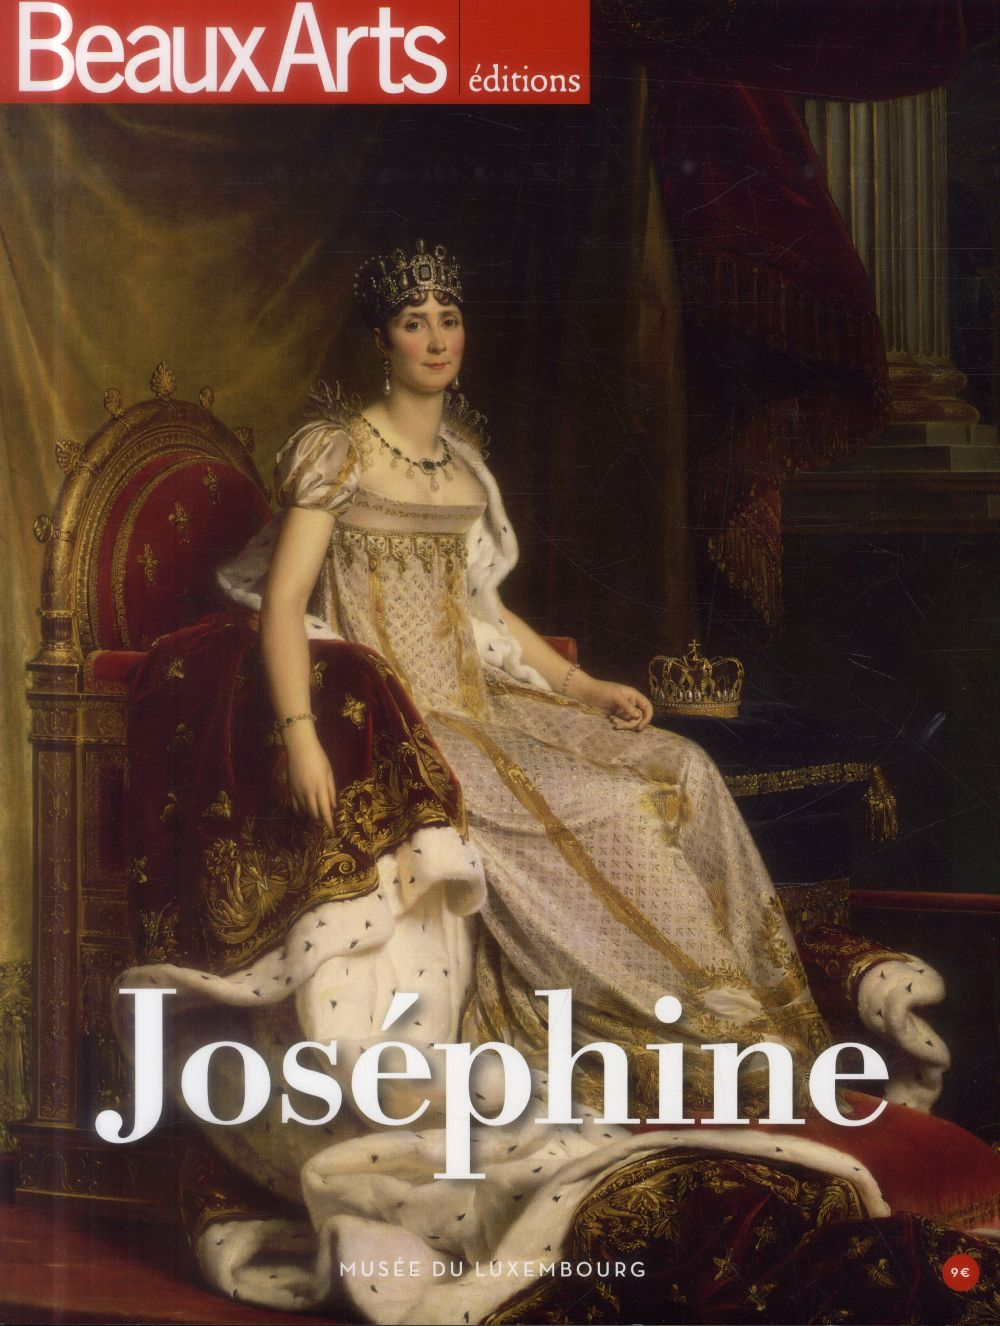 JOSEPHINE - MUSEE DU LUXEMBOURG